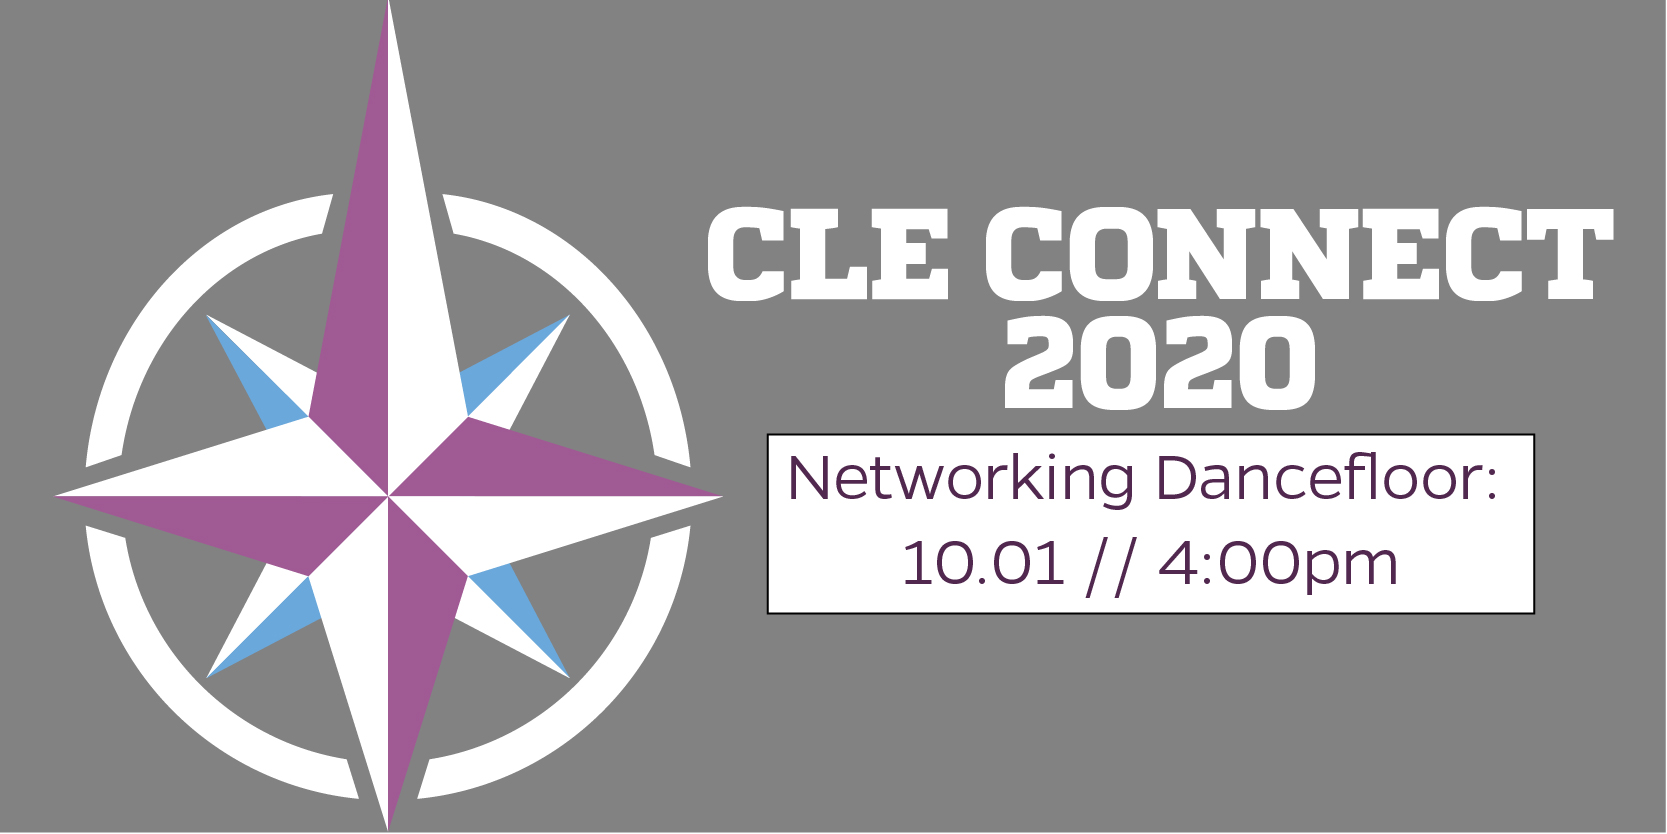 CLE CONNECT 2020